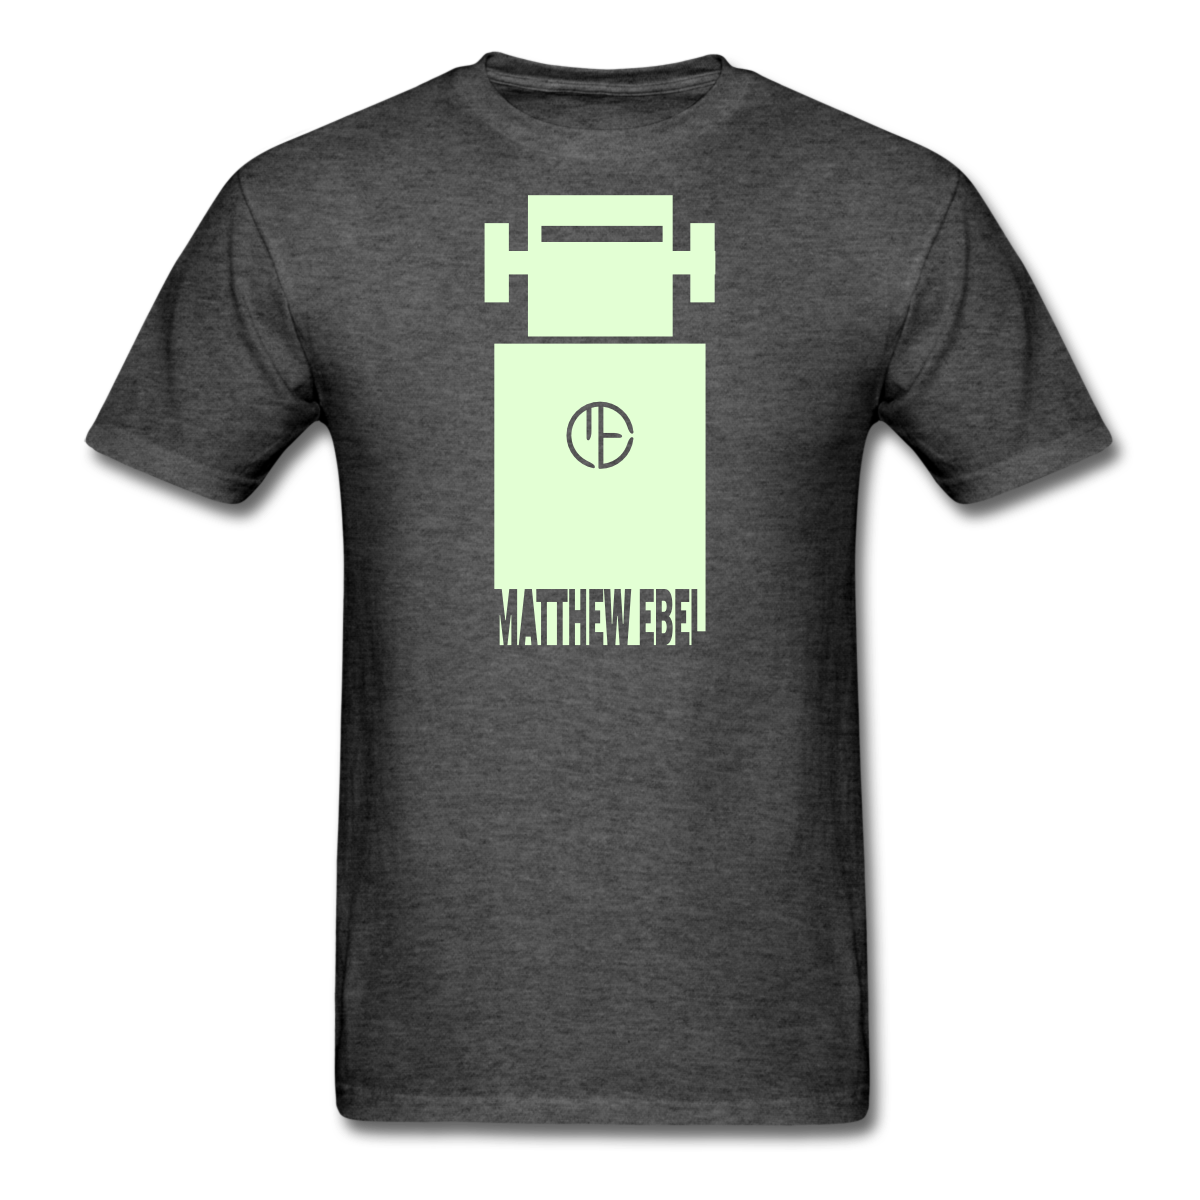 The Glowbot Shirt